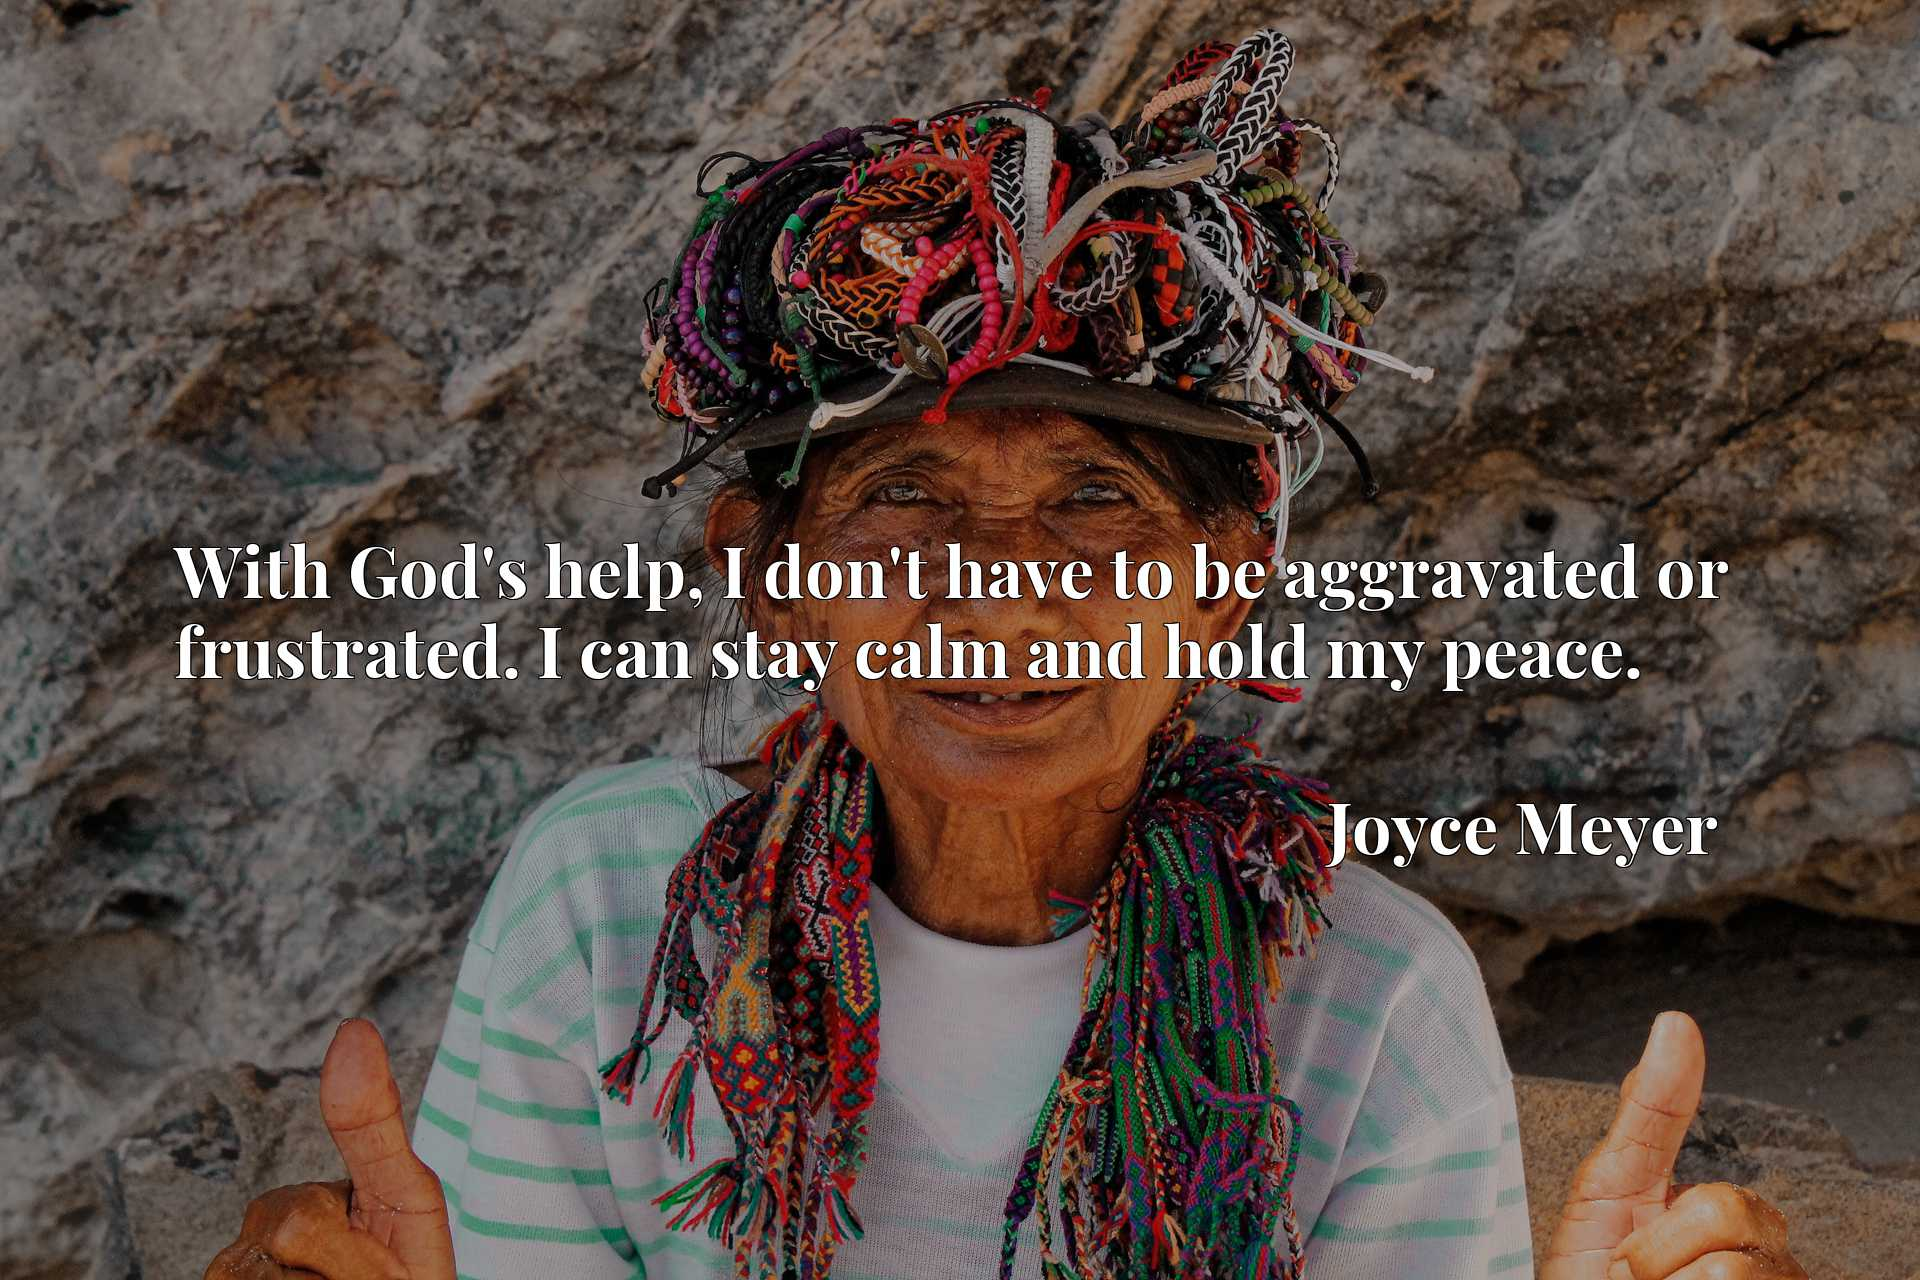 Quote Picture :With God's help, I don't have to be aggravated or frustrated. I can stay calm and hold my peace.